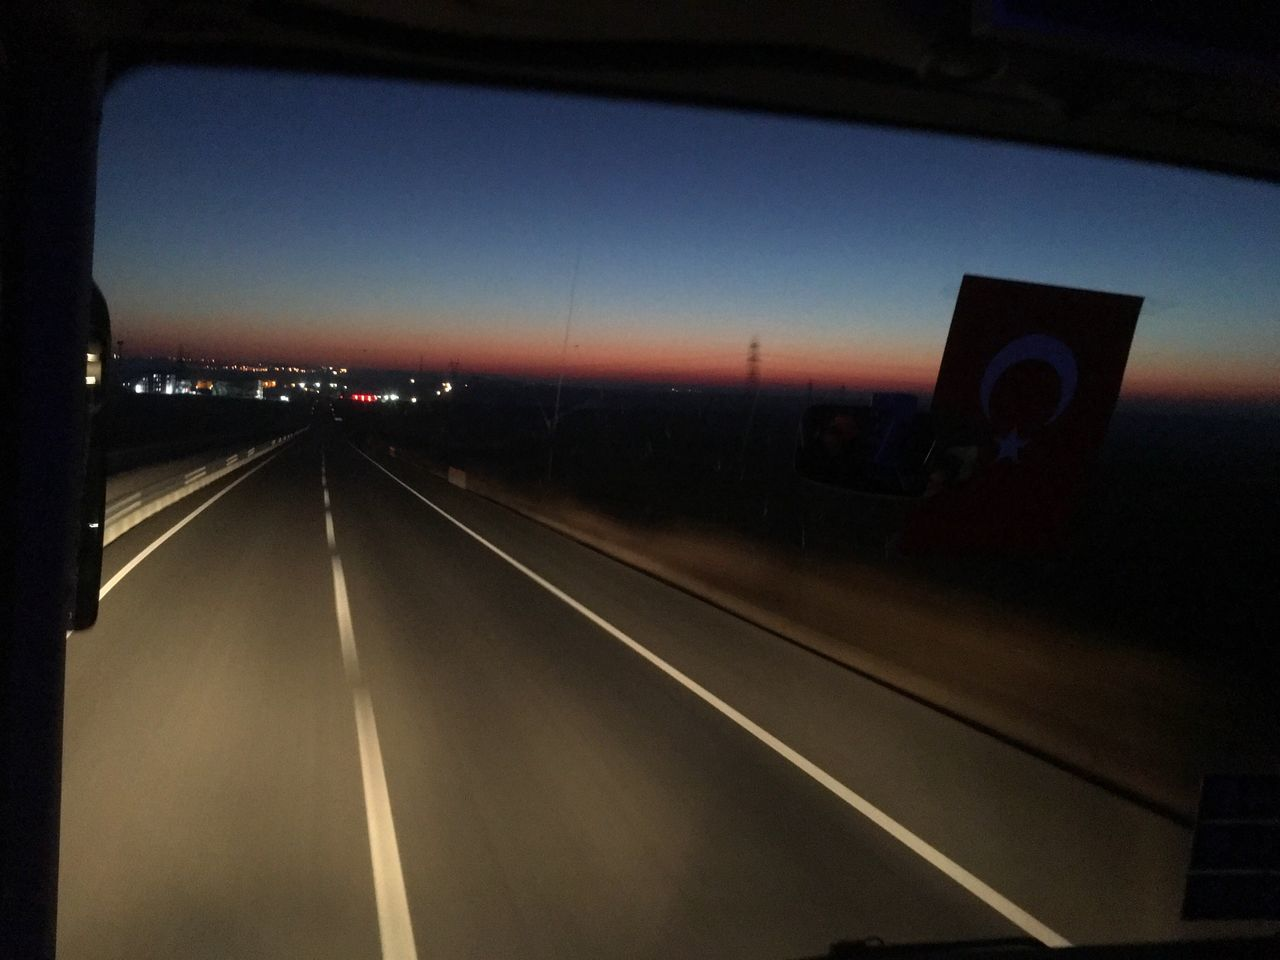 Transportation Car Illuminated Land Vehicle Road No People Sky Sunset Night Outdoors Yol Hikayeleri Sabah Morning Morning Light Morning Sky Yol Yollar Otobus Bus Bus Stop Sun Sun Rise Sun Rising Sun Rise Collection Sunrise